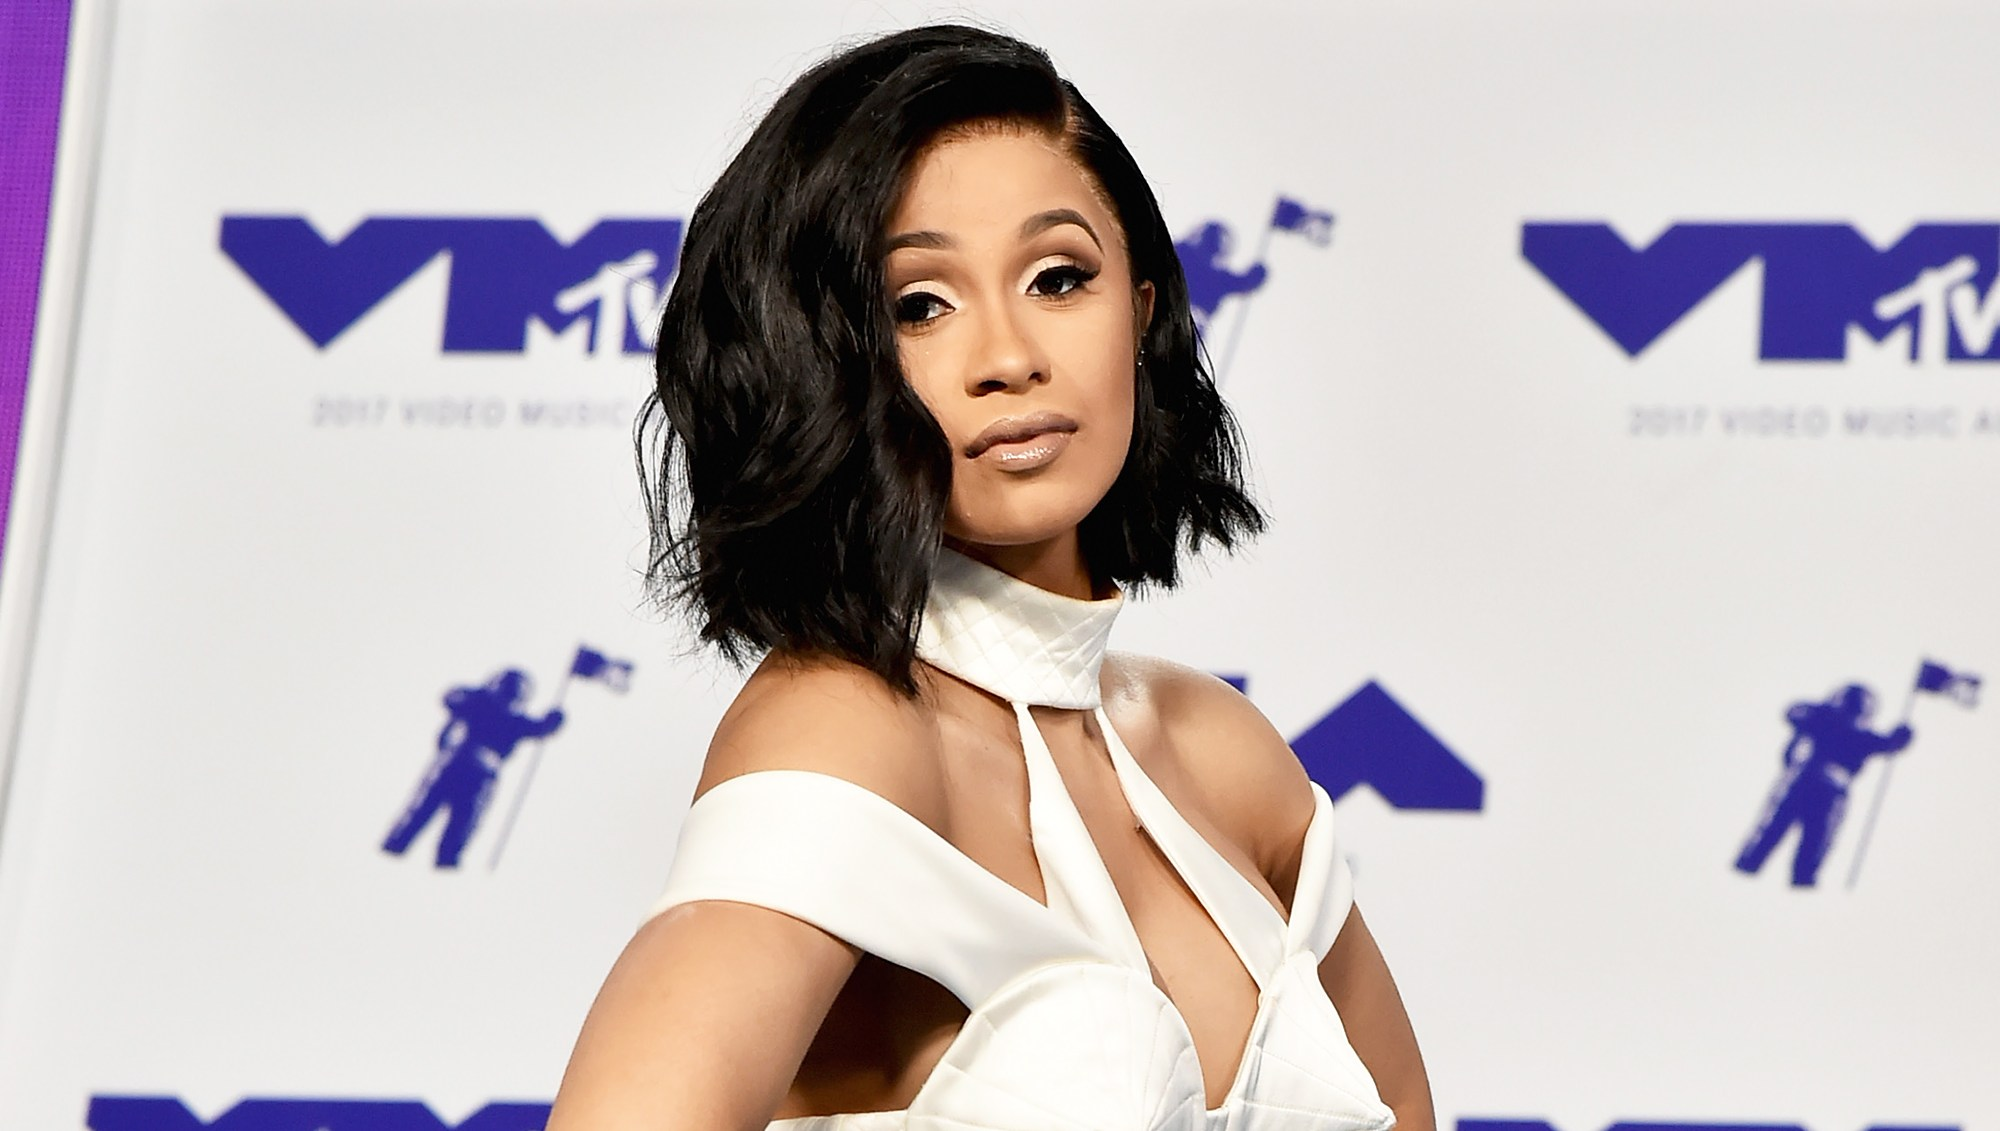 Cardi B VMAs 2018 Everything You Need To Know